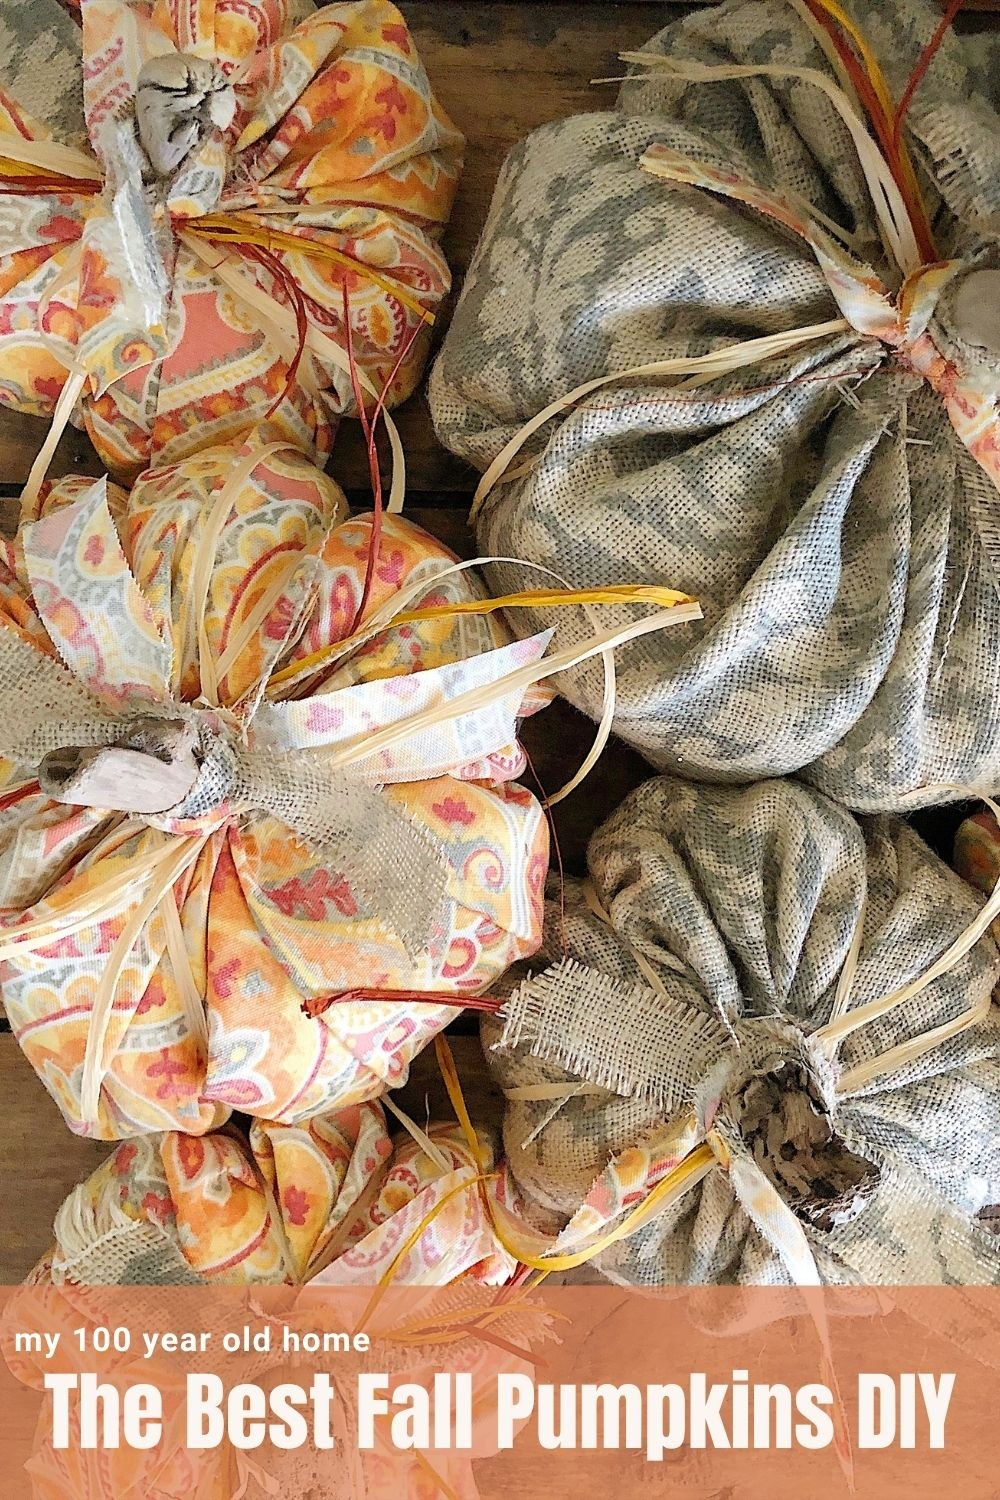 As you are getting ready for fall, I want to share a very fun Fall Pumpkins DIY. I made these pumpkins with fall fabric and driftwood!